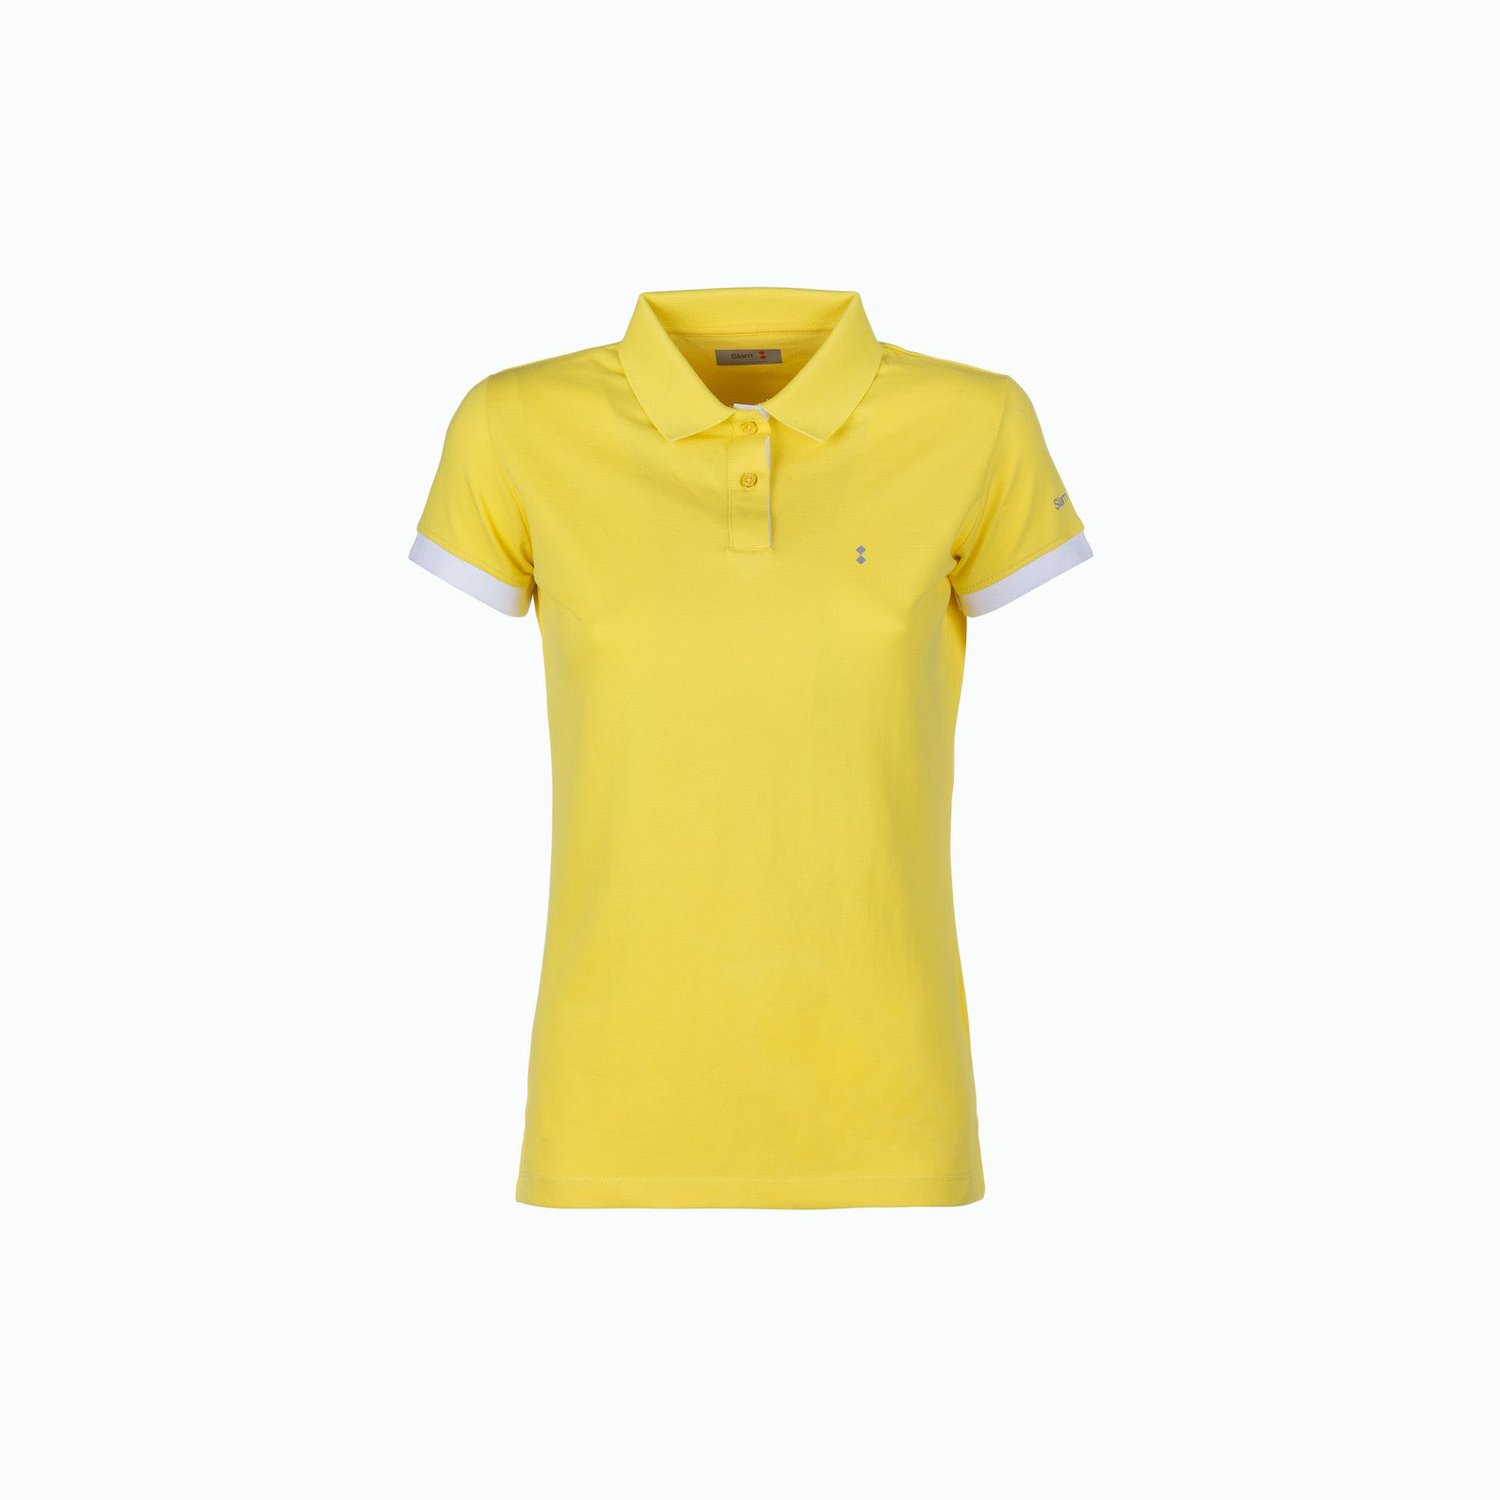 C128 Polo - Blazing Yellow